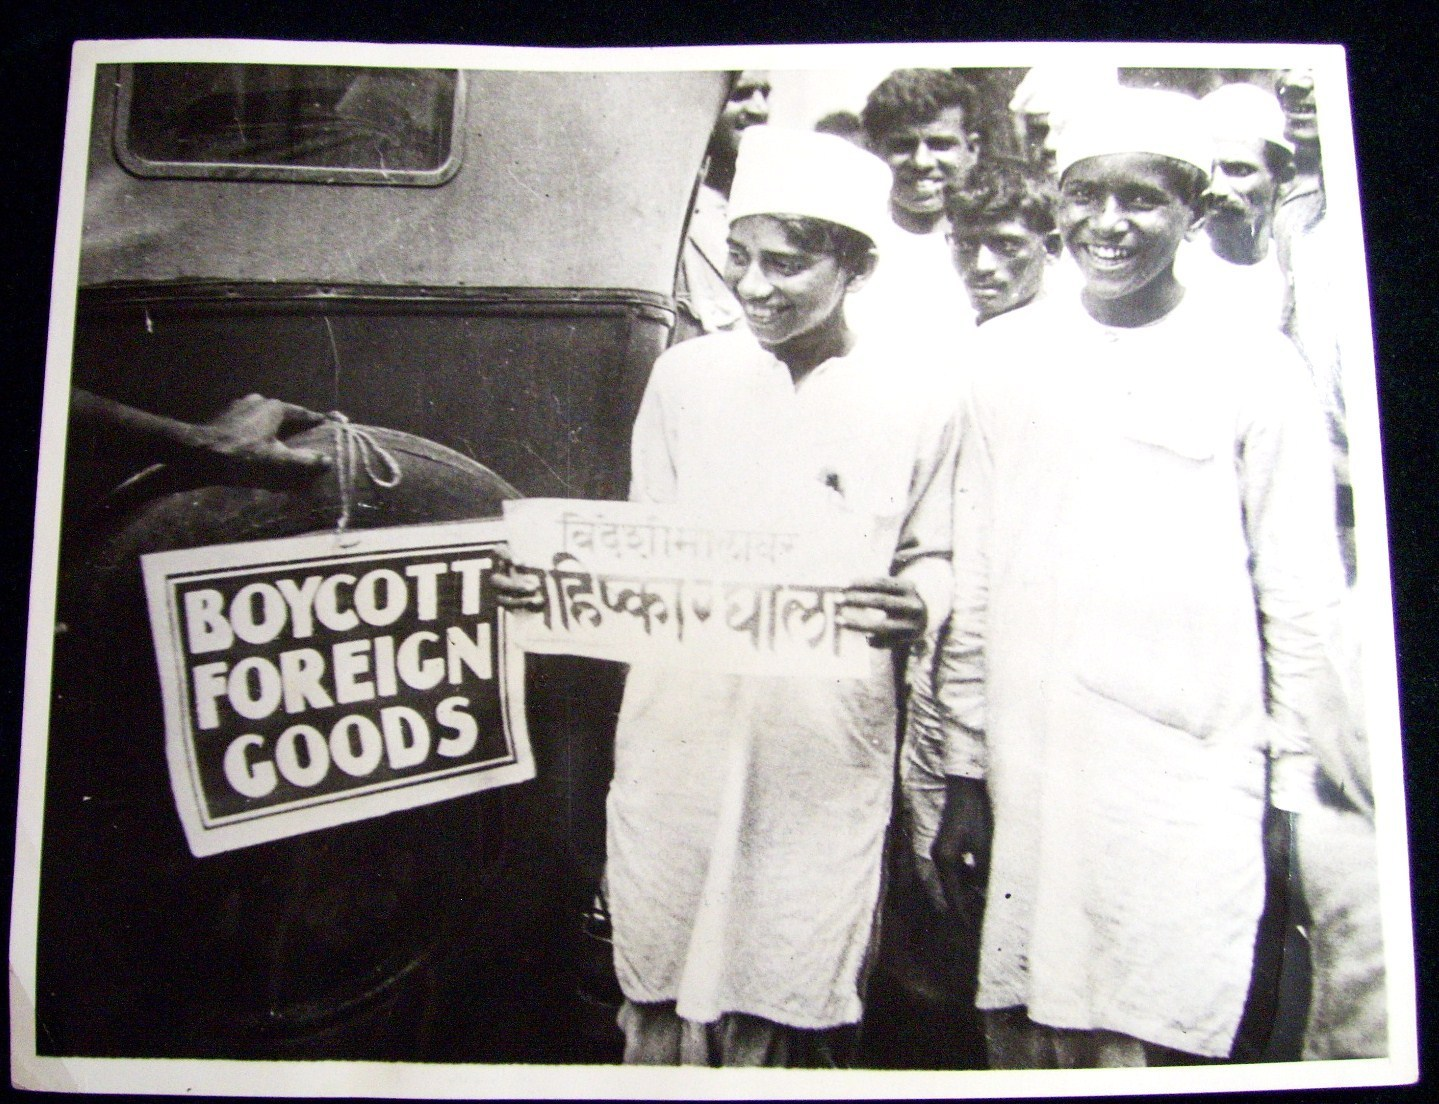 Indian Young Nationalist Affixing a Boycott Sign, to a Foreign Cart in the Streets of Bombay (Mumbai) - 1930